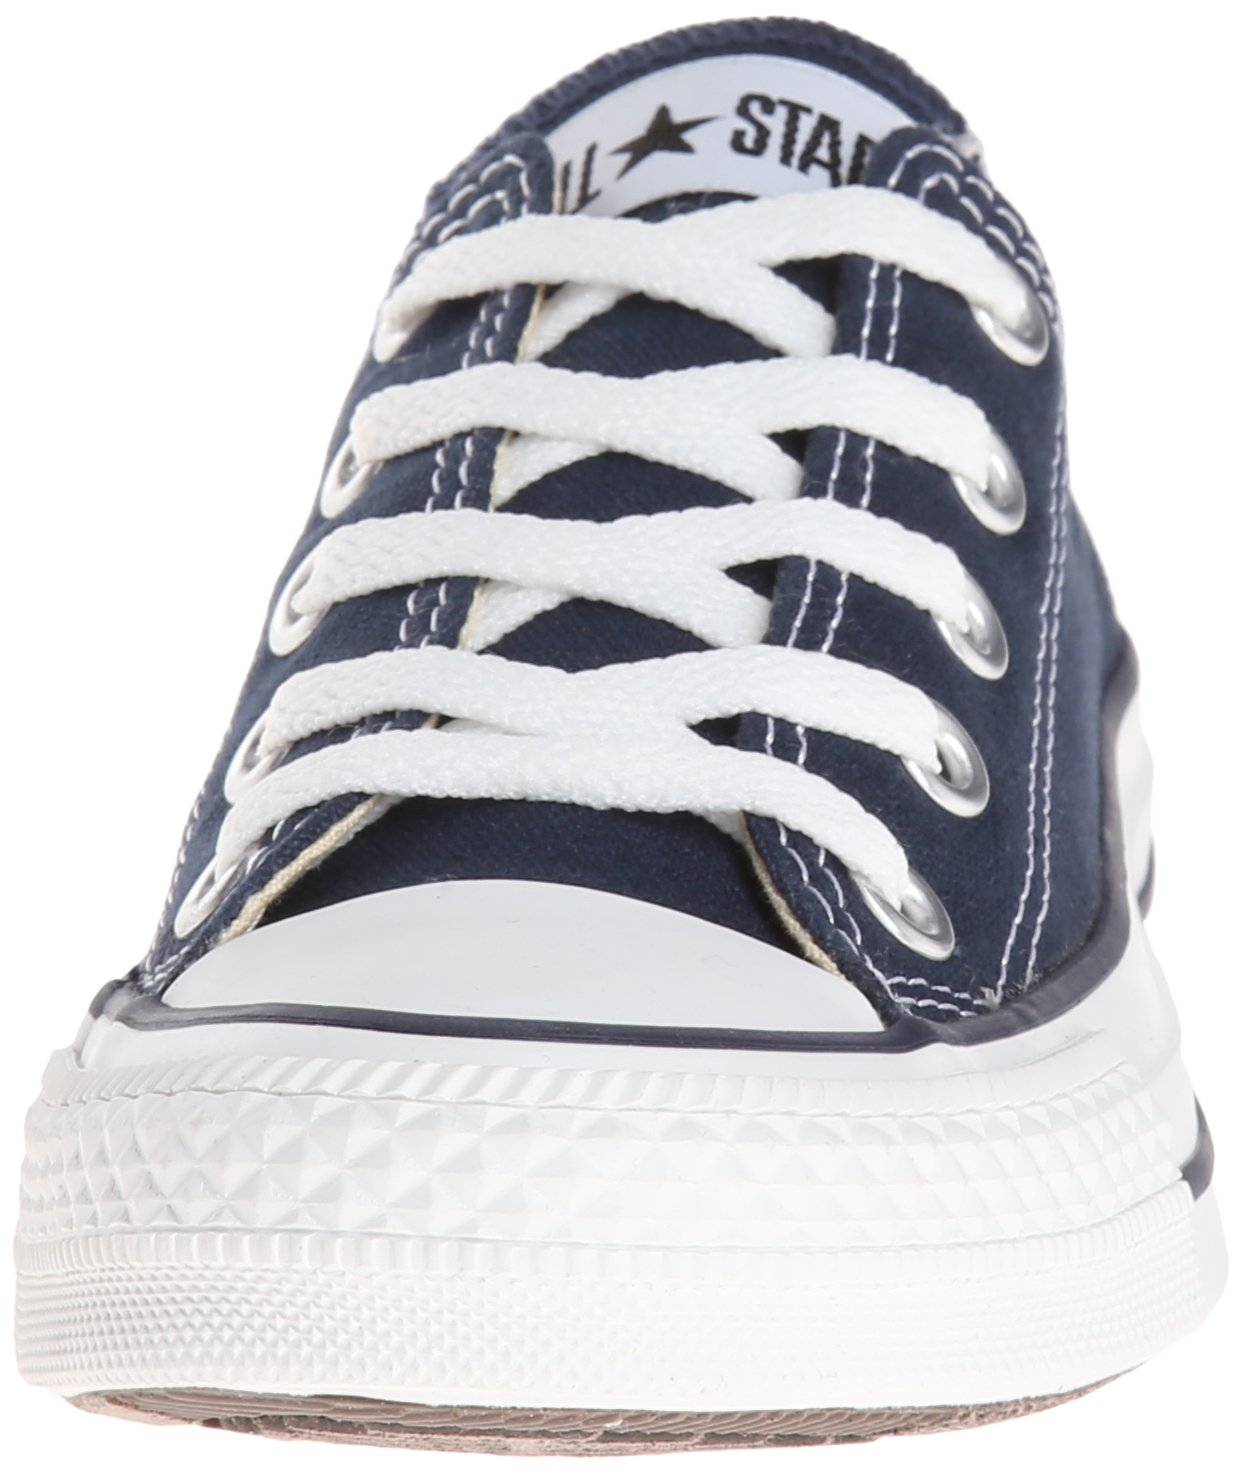 Converse Chuck Taylor All Star Canvas Low Top Sneaker B00G2C980S 10 B(M) US Women / 8 D(M) US Men|Navy